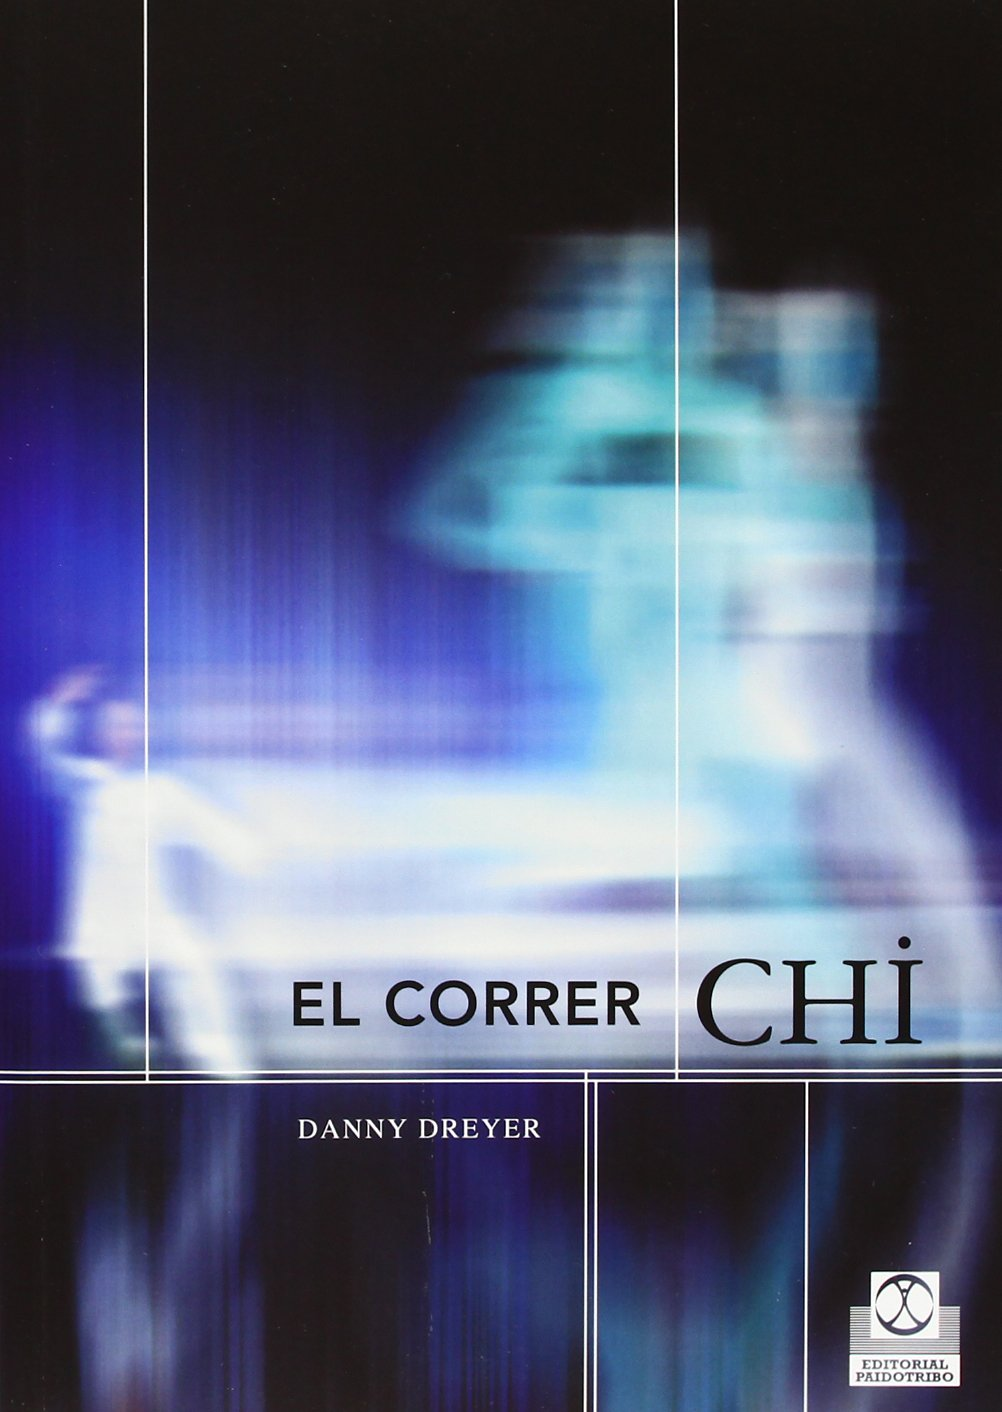 El Correr Chi (Spanish Edition): Danny Dreyer: 9788480198325 ...